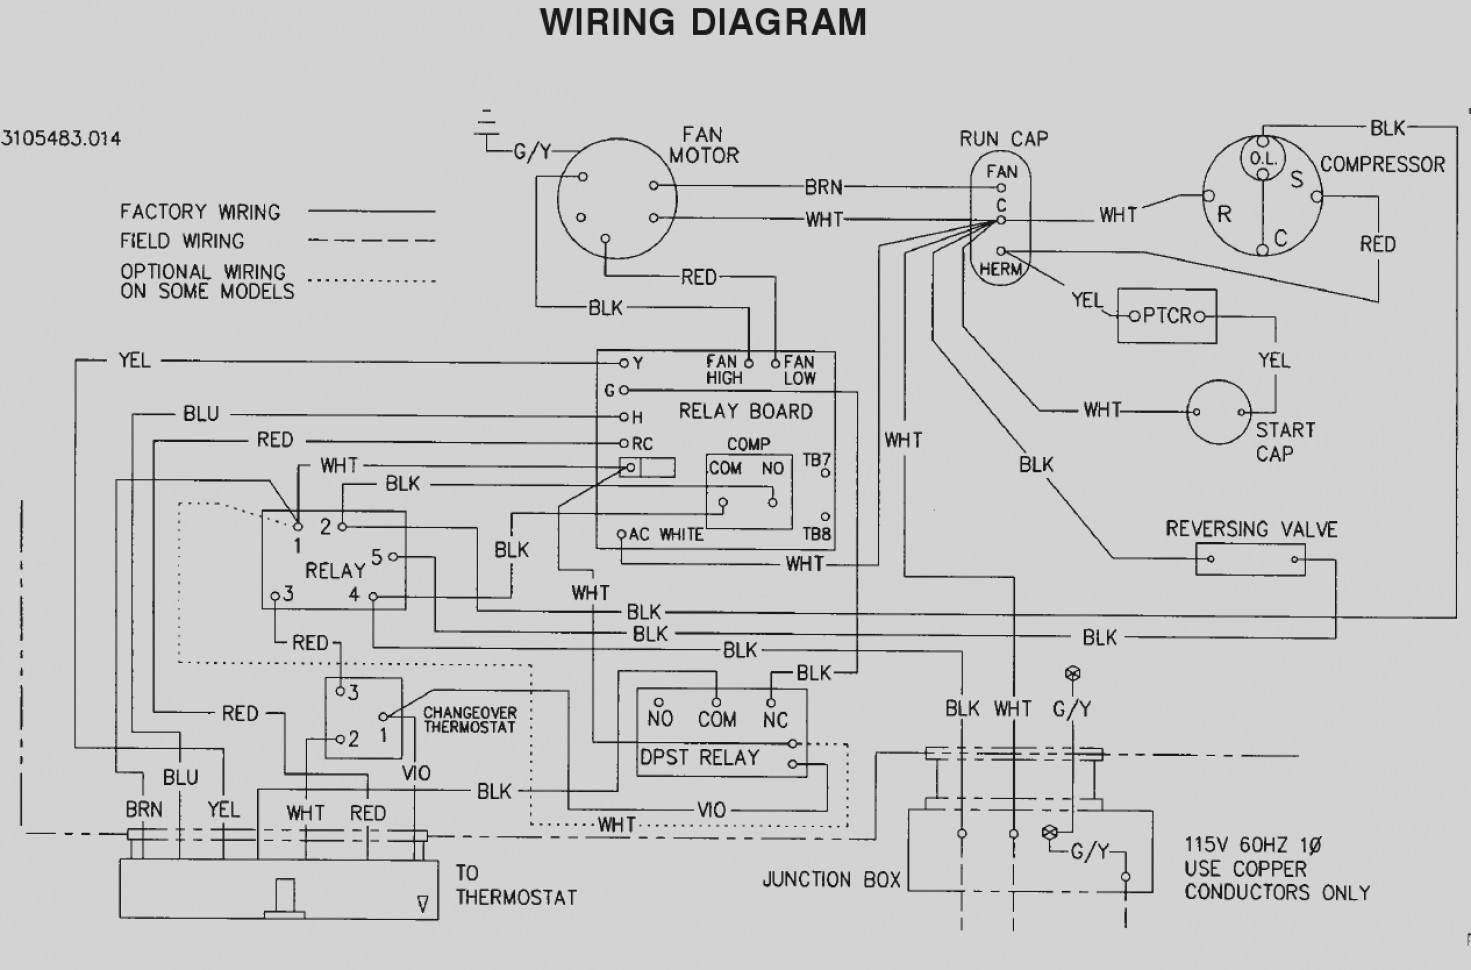 1989 sea doo wiring diagram wiring diagram val